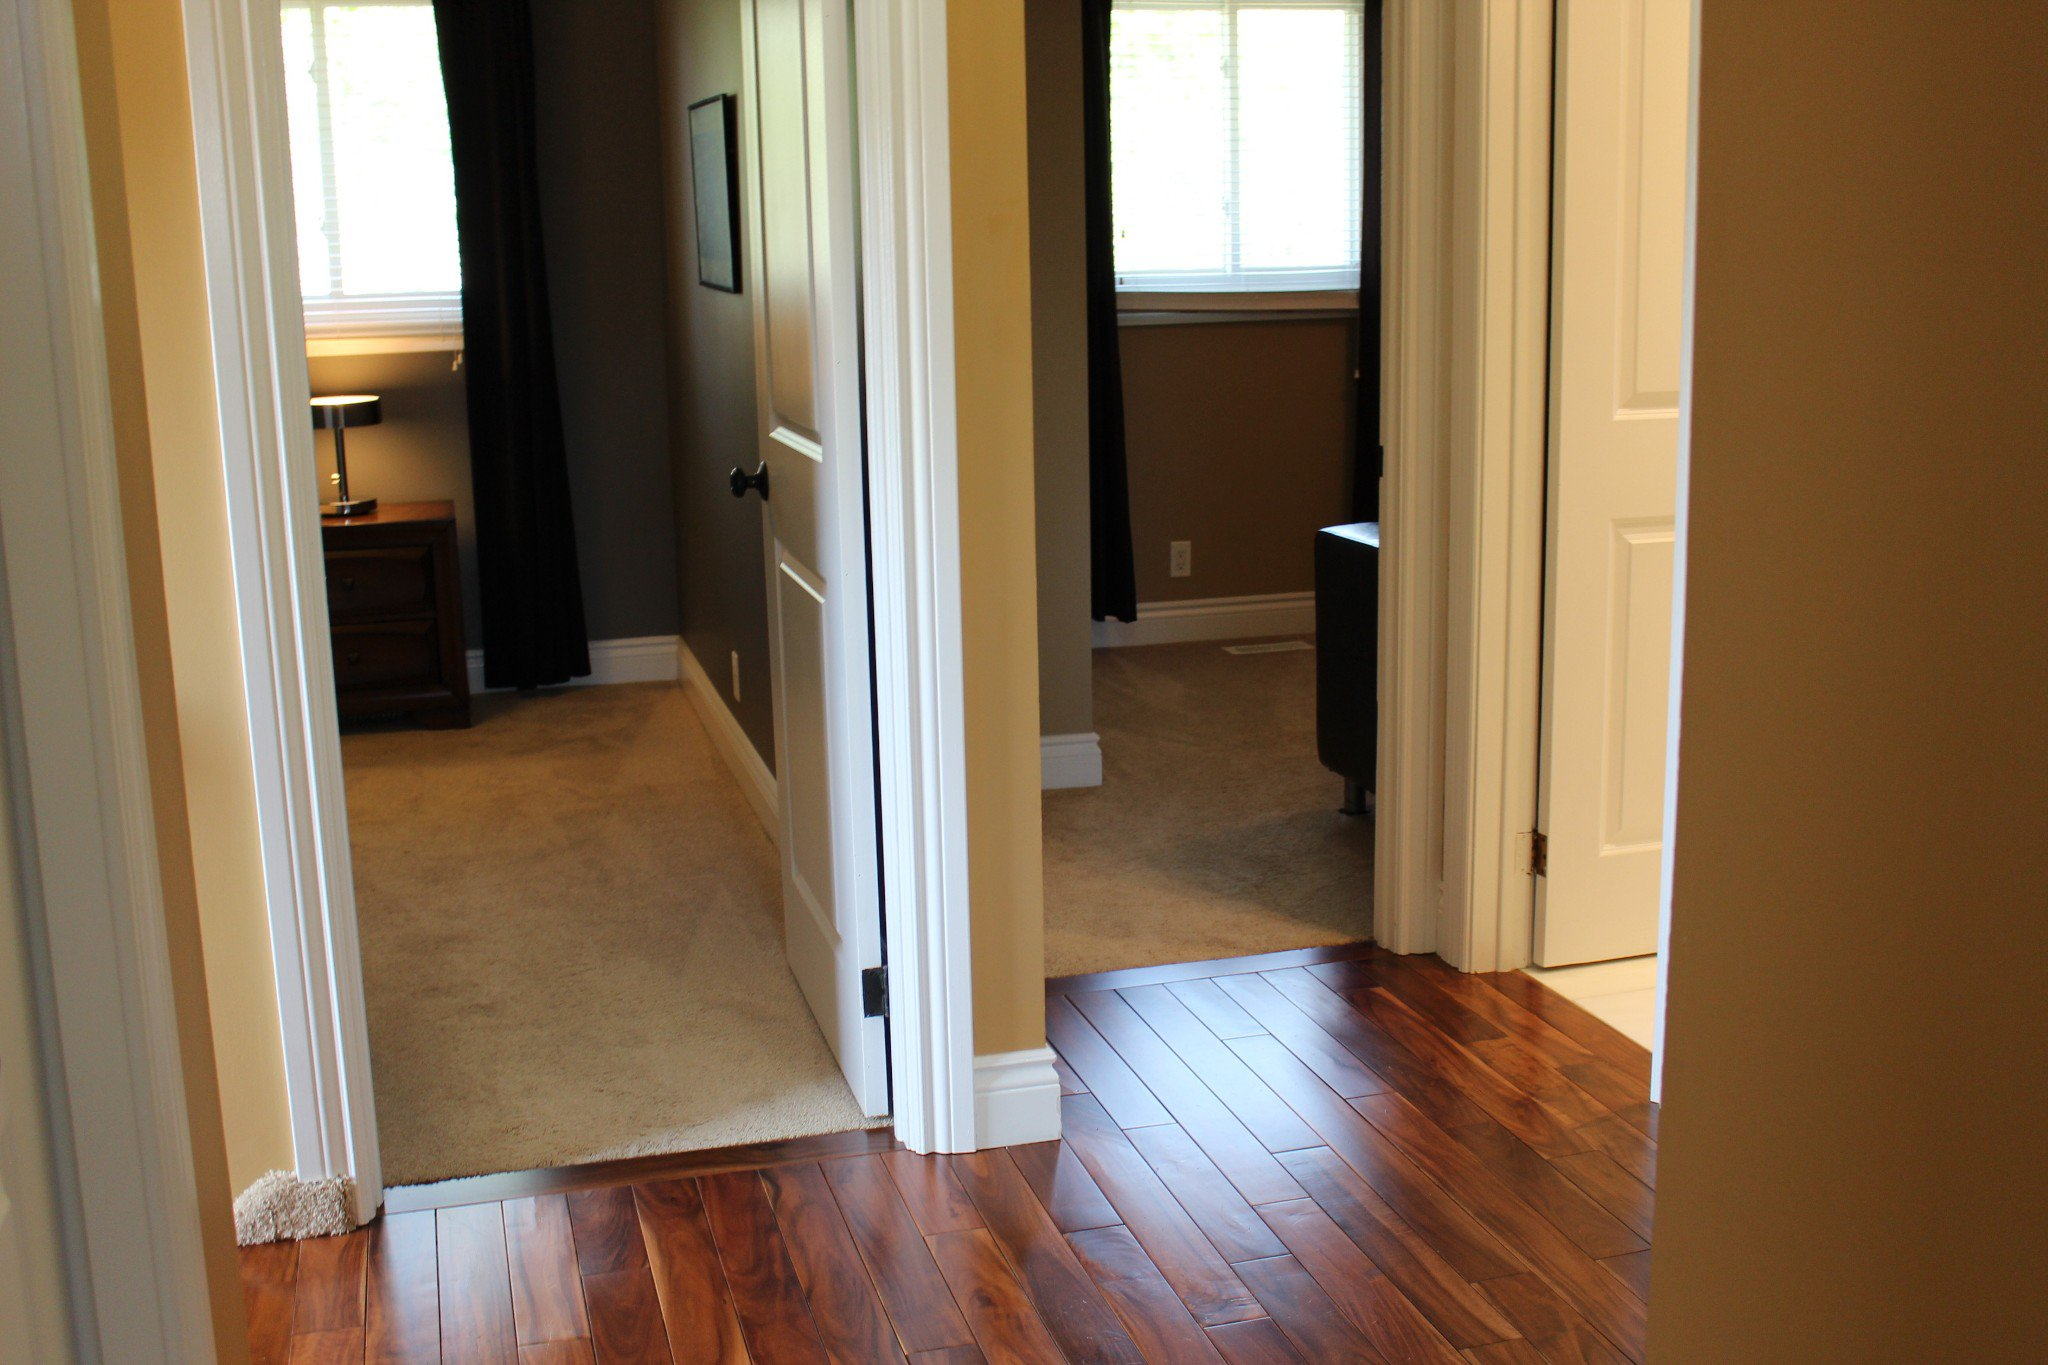 Photo 19: Photos: 751 Spragge Crescent in Cobourg: Residential Detached for sale : MLS®# 1291056